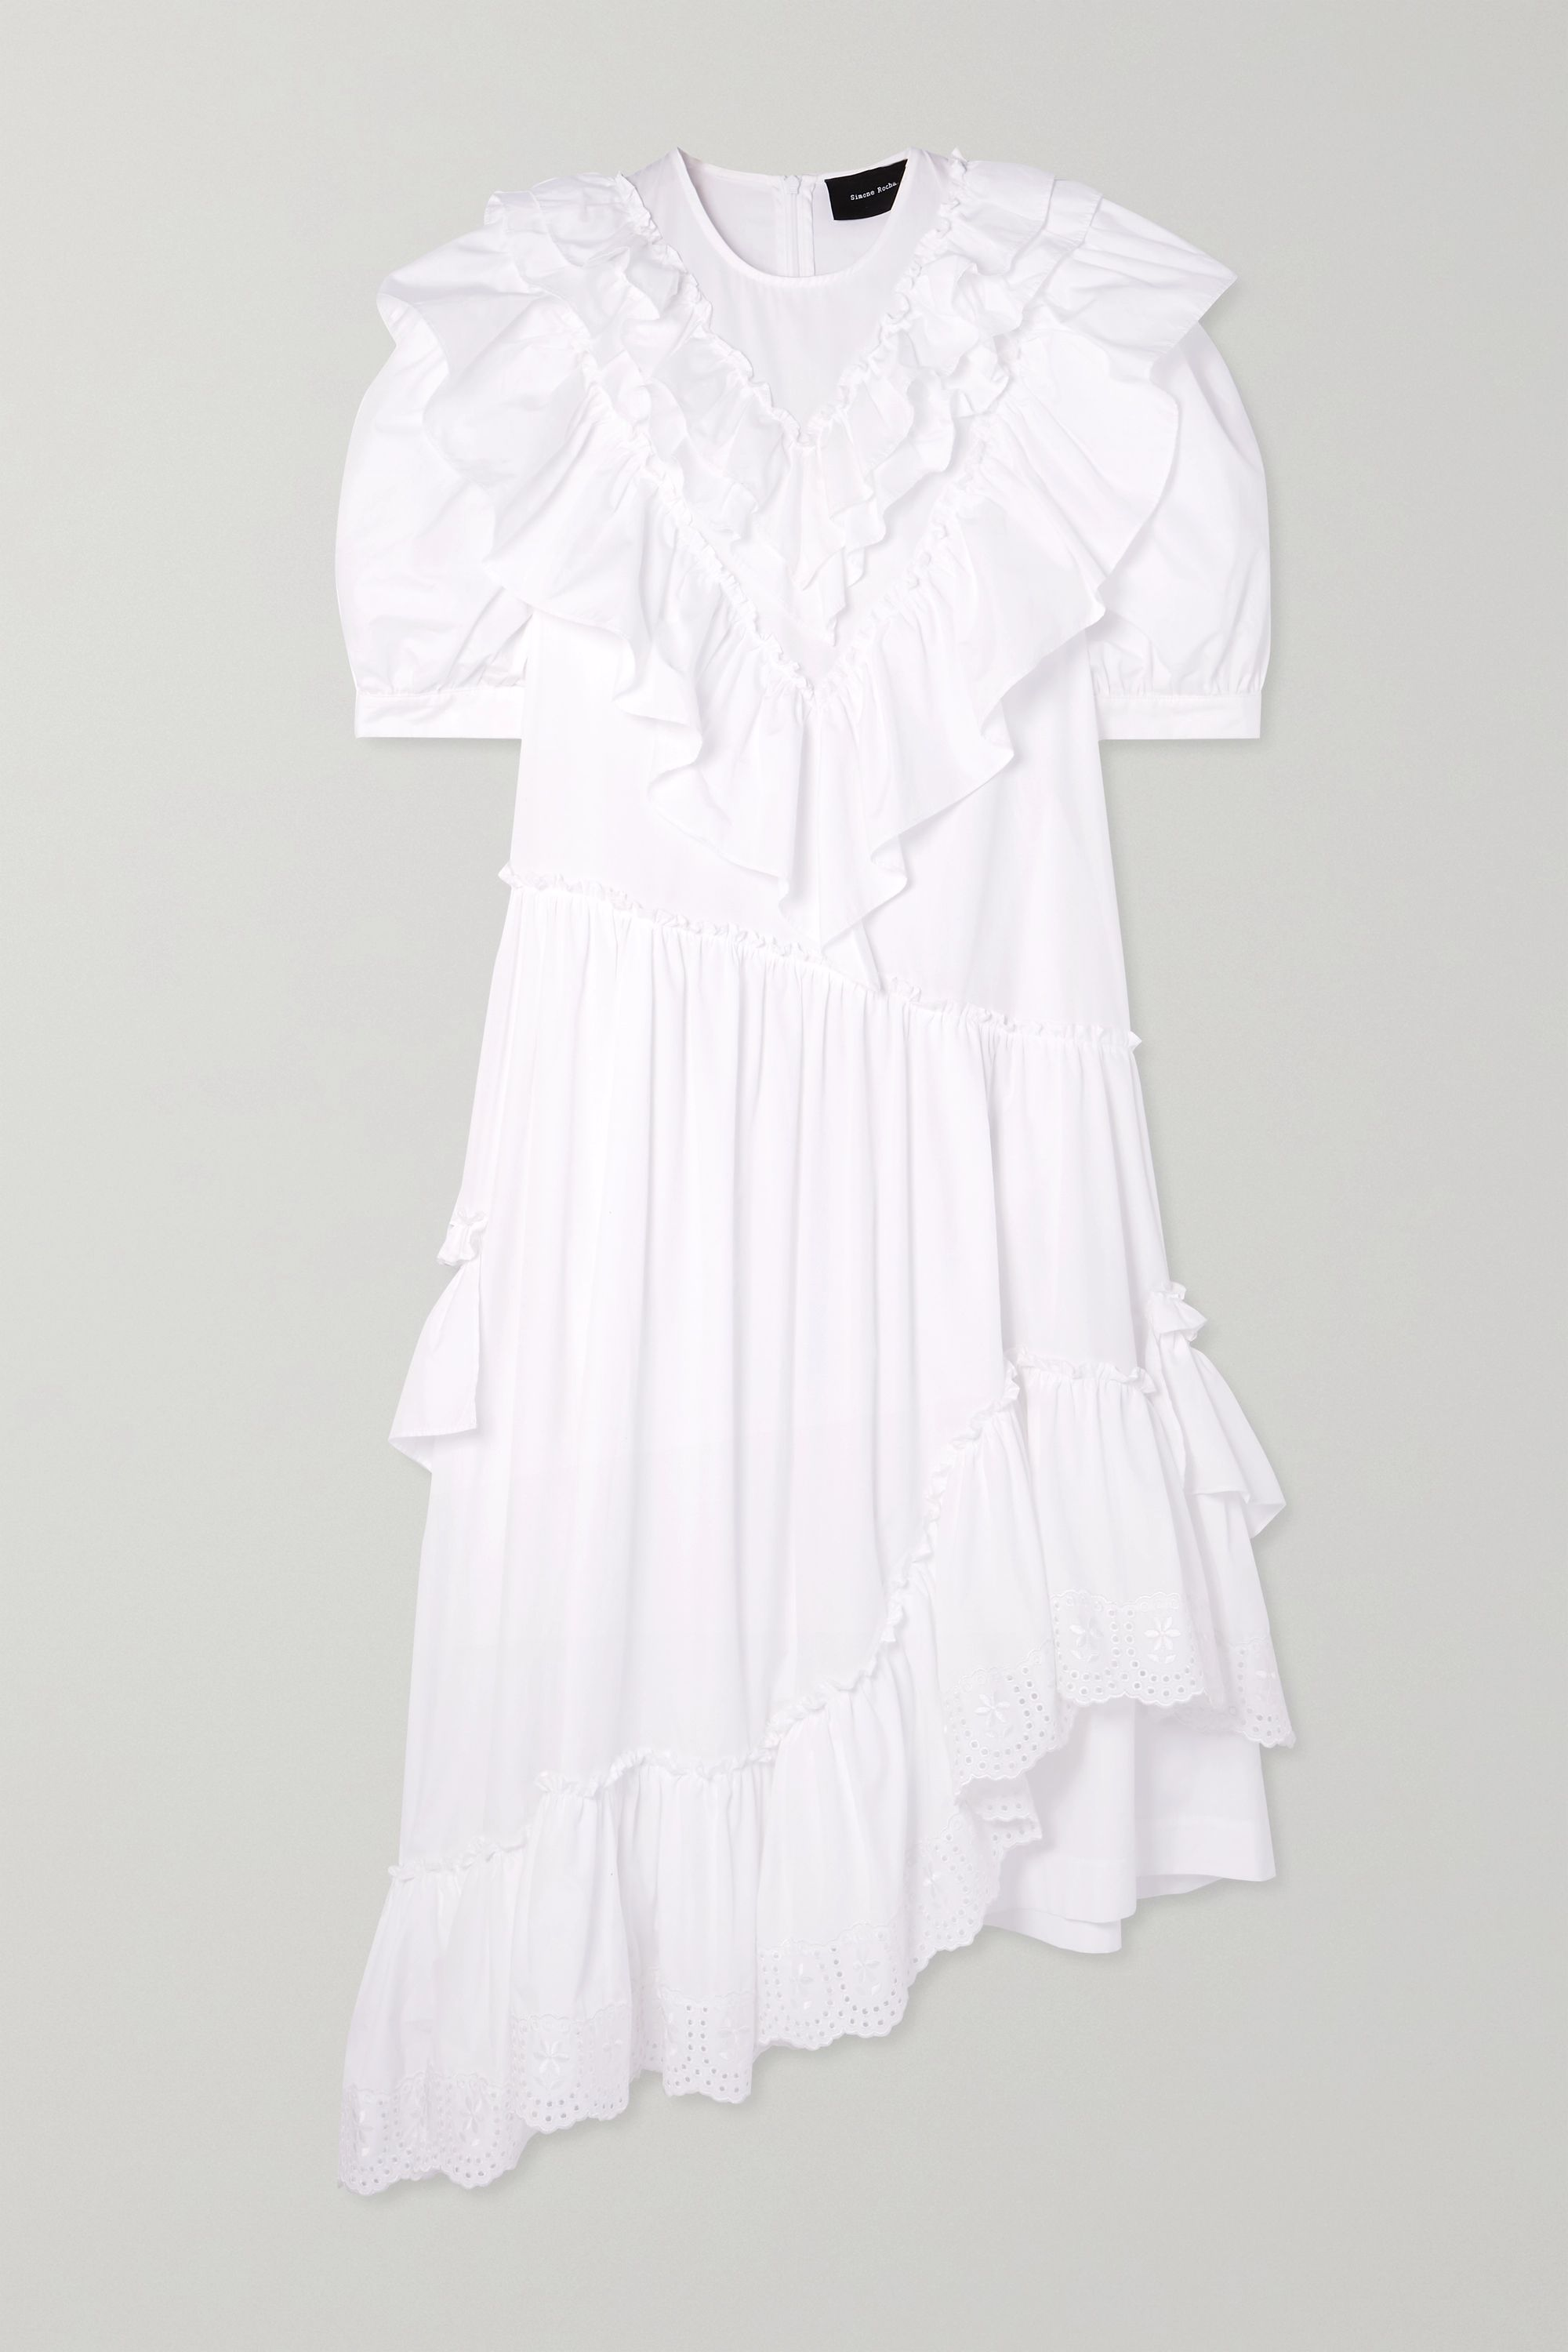 Simone Rocha Bite asymmetric ruffled broderie anglaise cotton-poplin midi dress